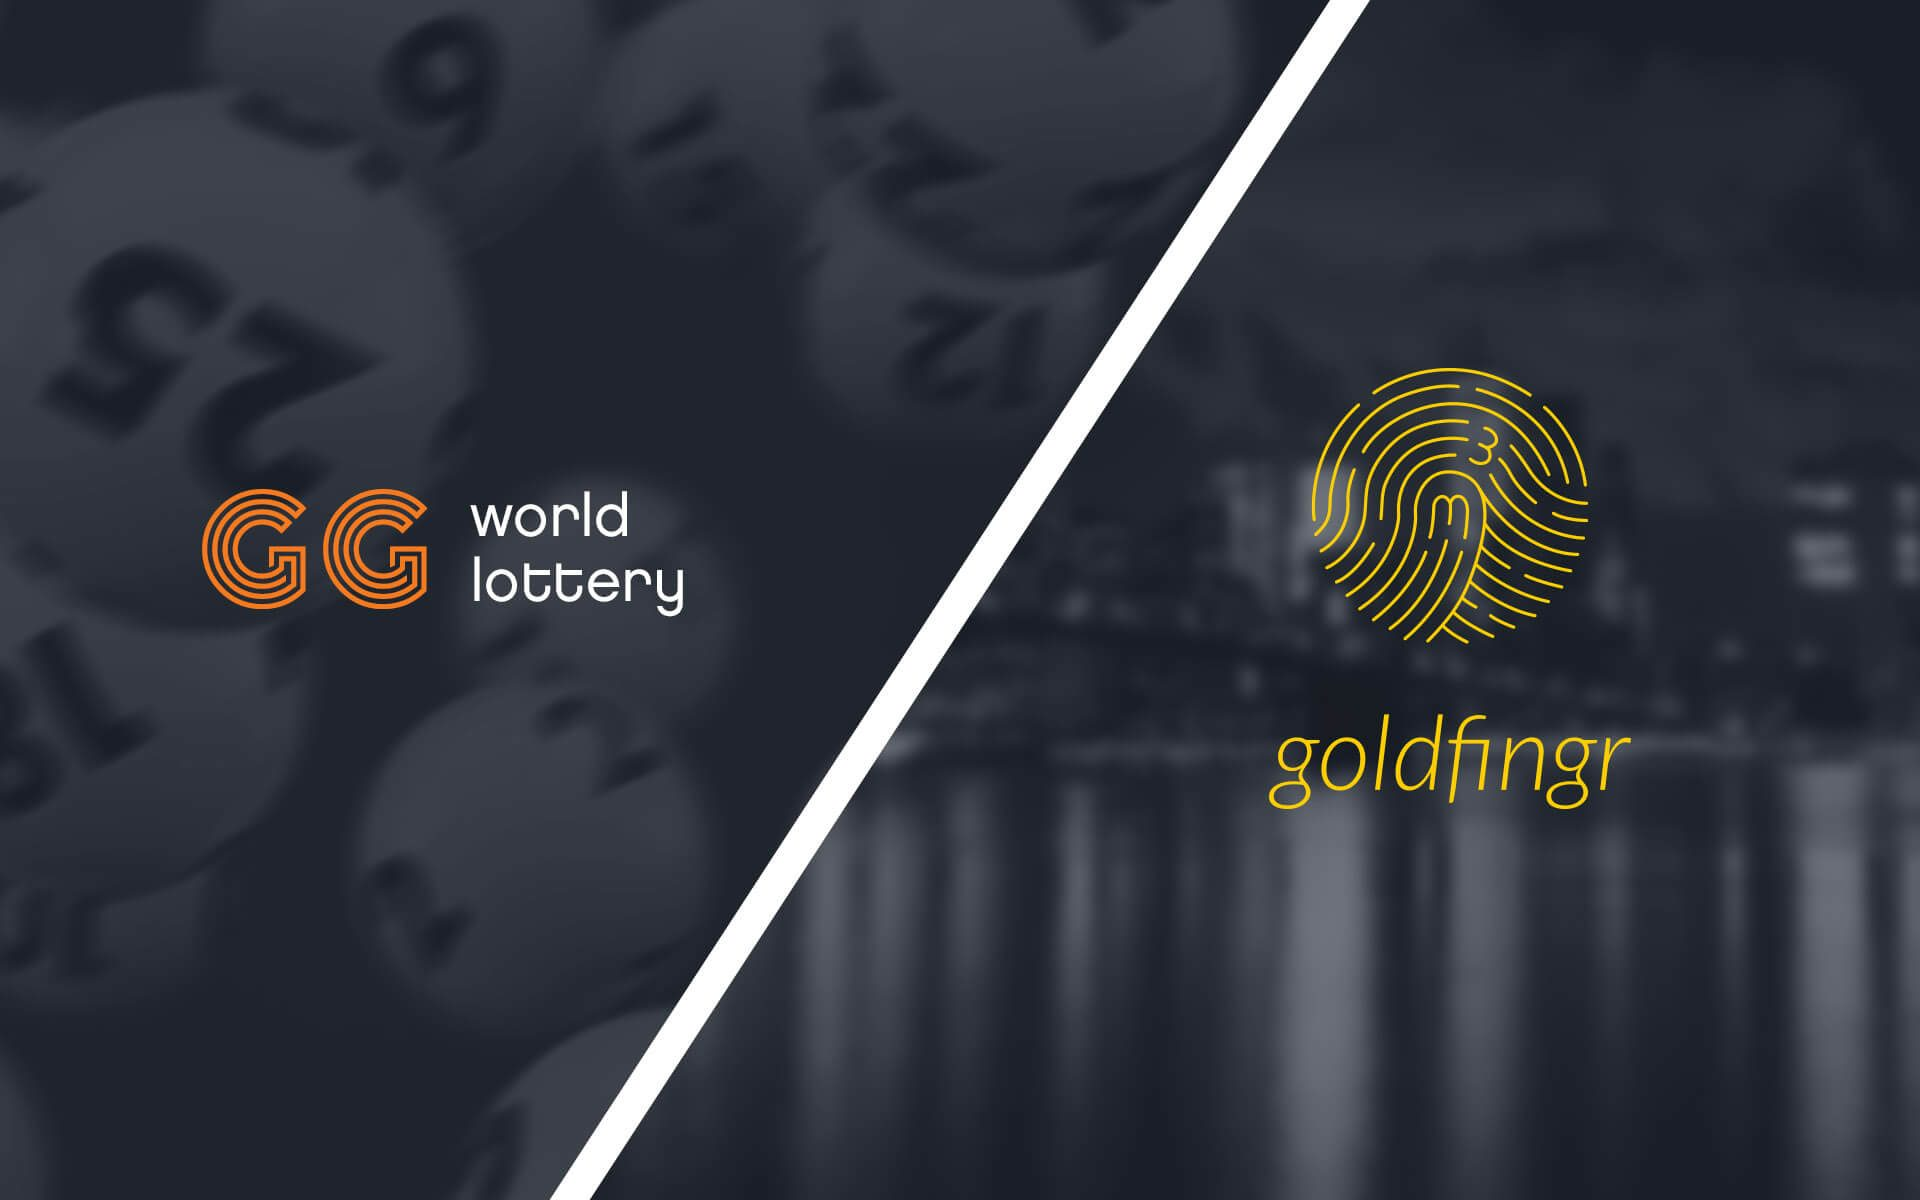 GG World to Gain More Credibility as It Partners With Goldfingr Investment Network